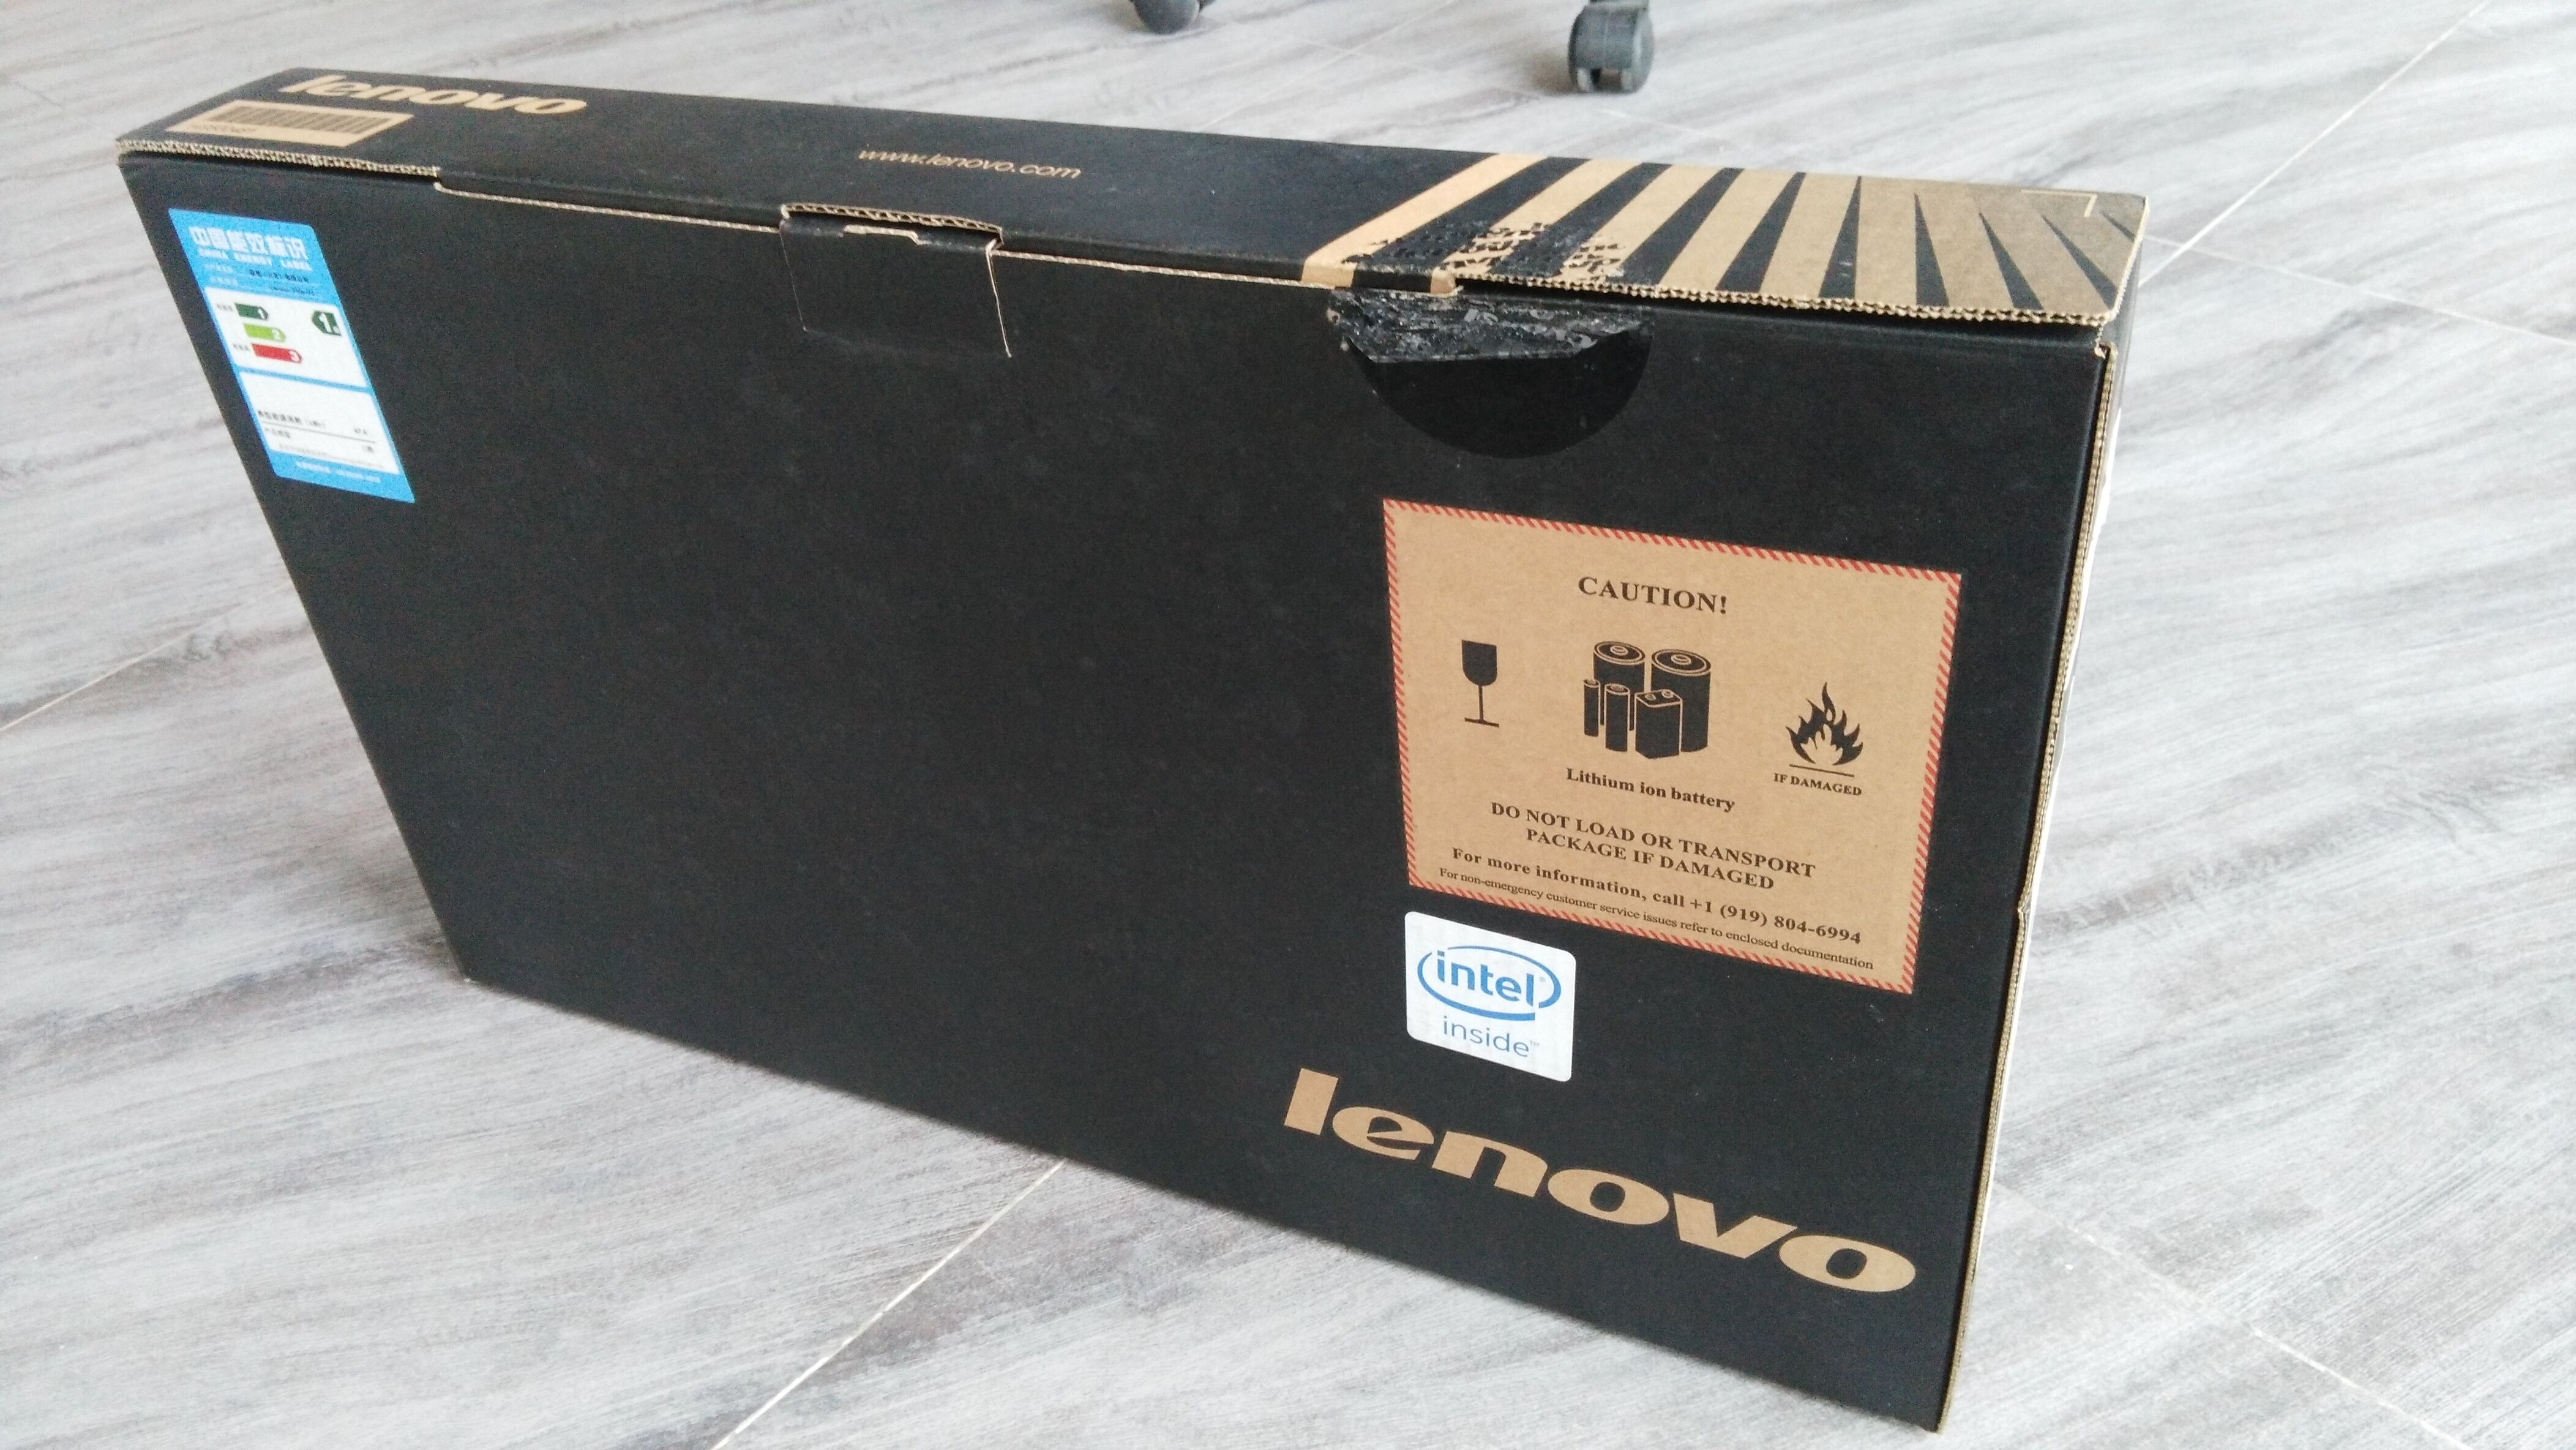 "Lenovo IdeaPad Y50-70 15.6"" i7-4710HQ 2.5GHz 1TB HDD 8GB RAM LAP"